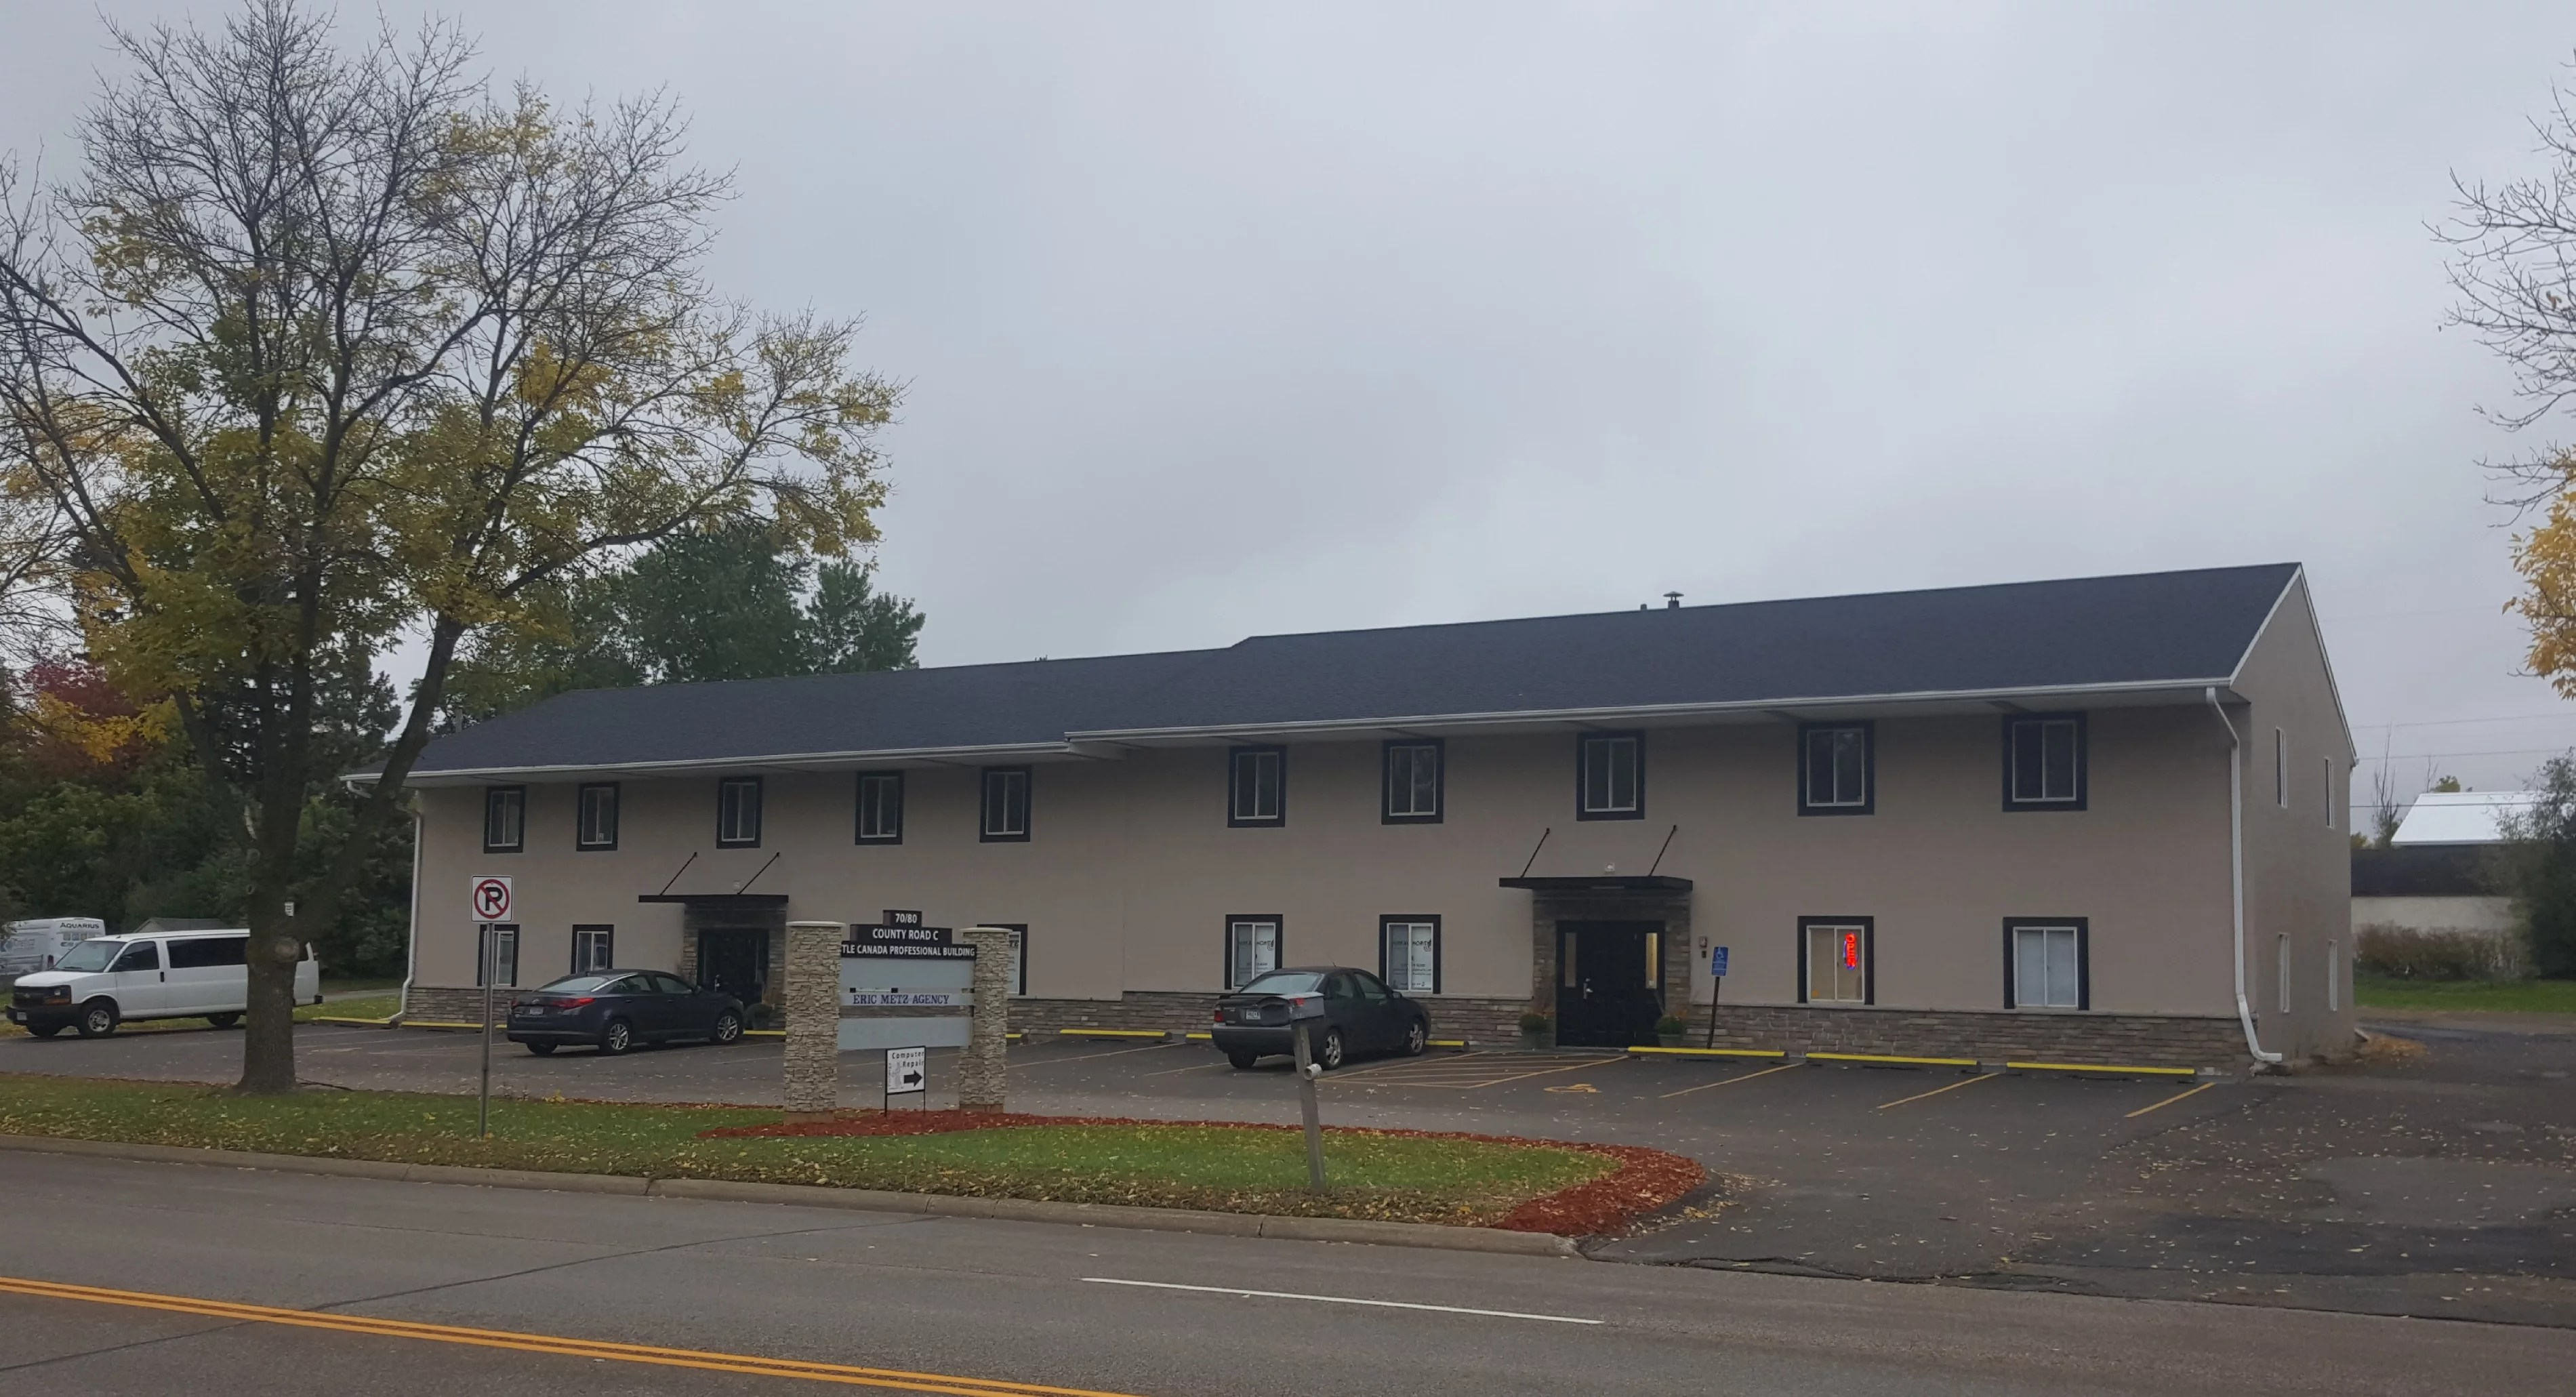 Little Canada Professional Building at 70-80 County Rd C West